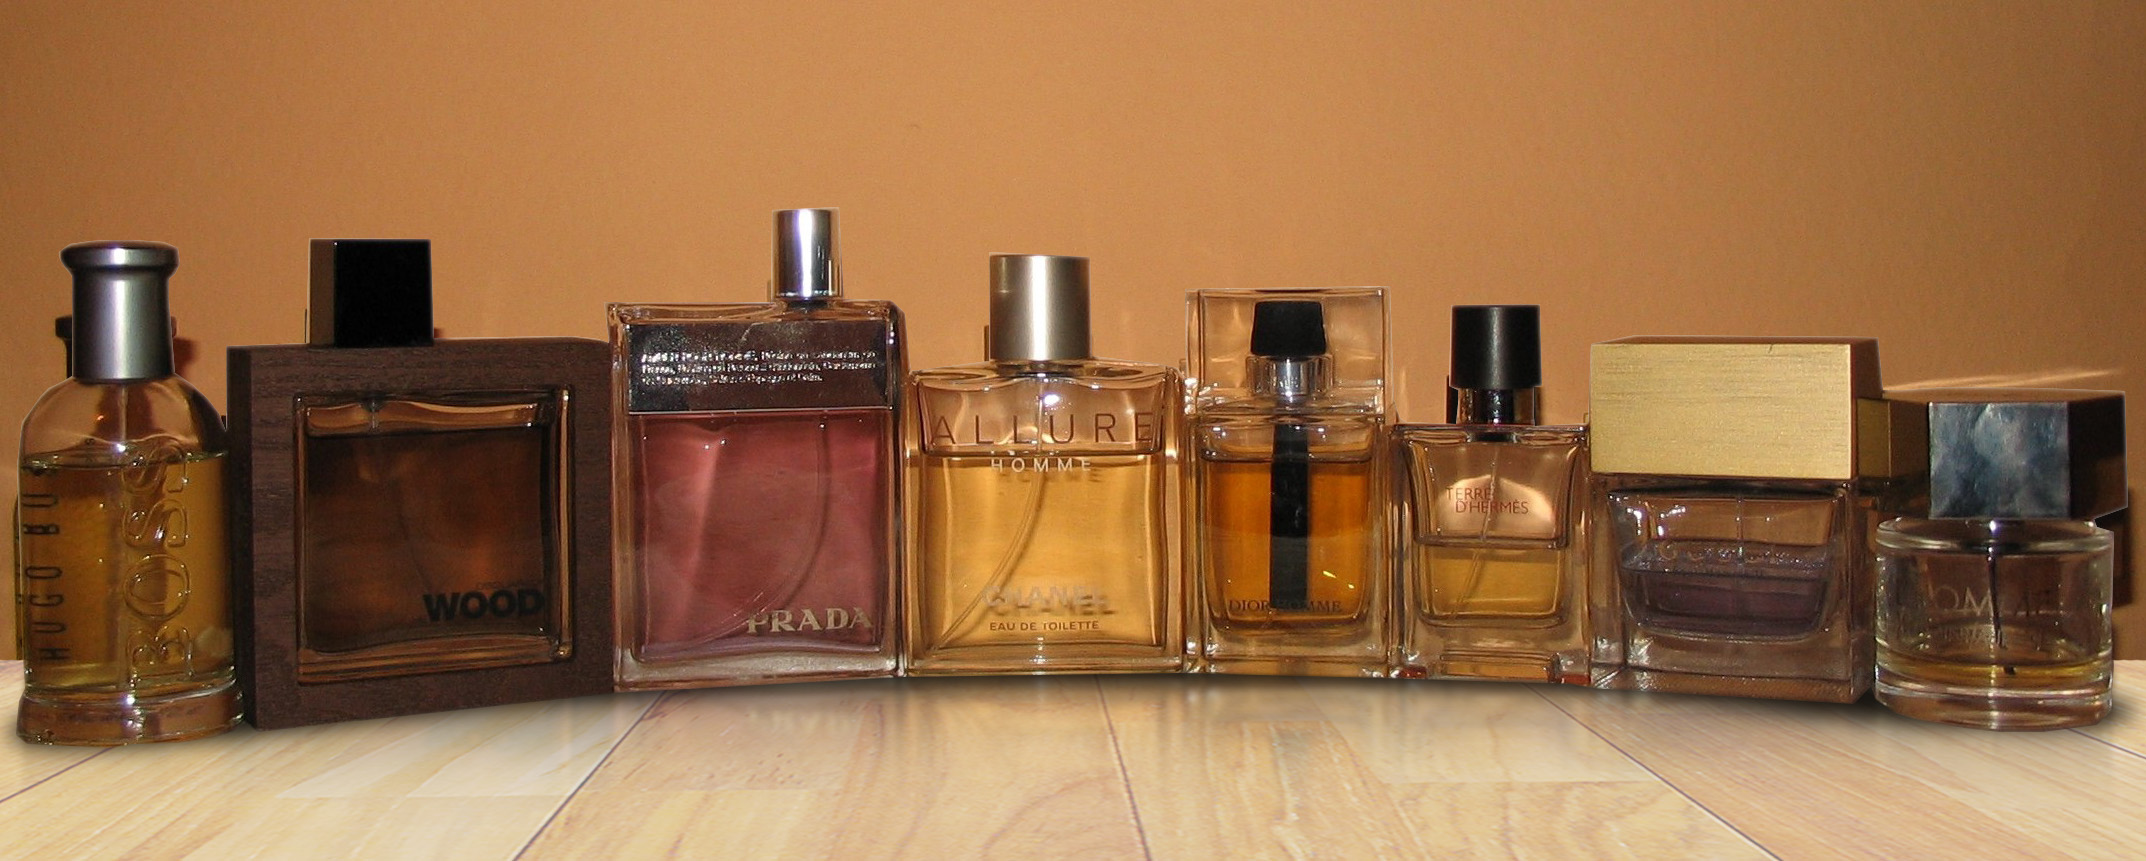 Top Men S Classic Designer Fragrances For Autumn Vintage Nonchalance